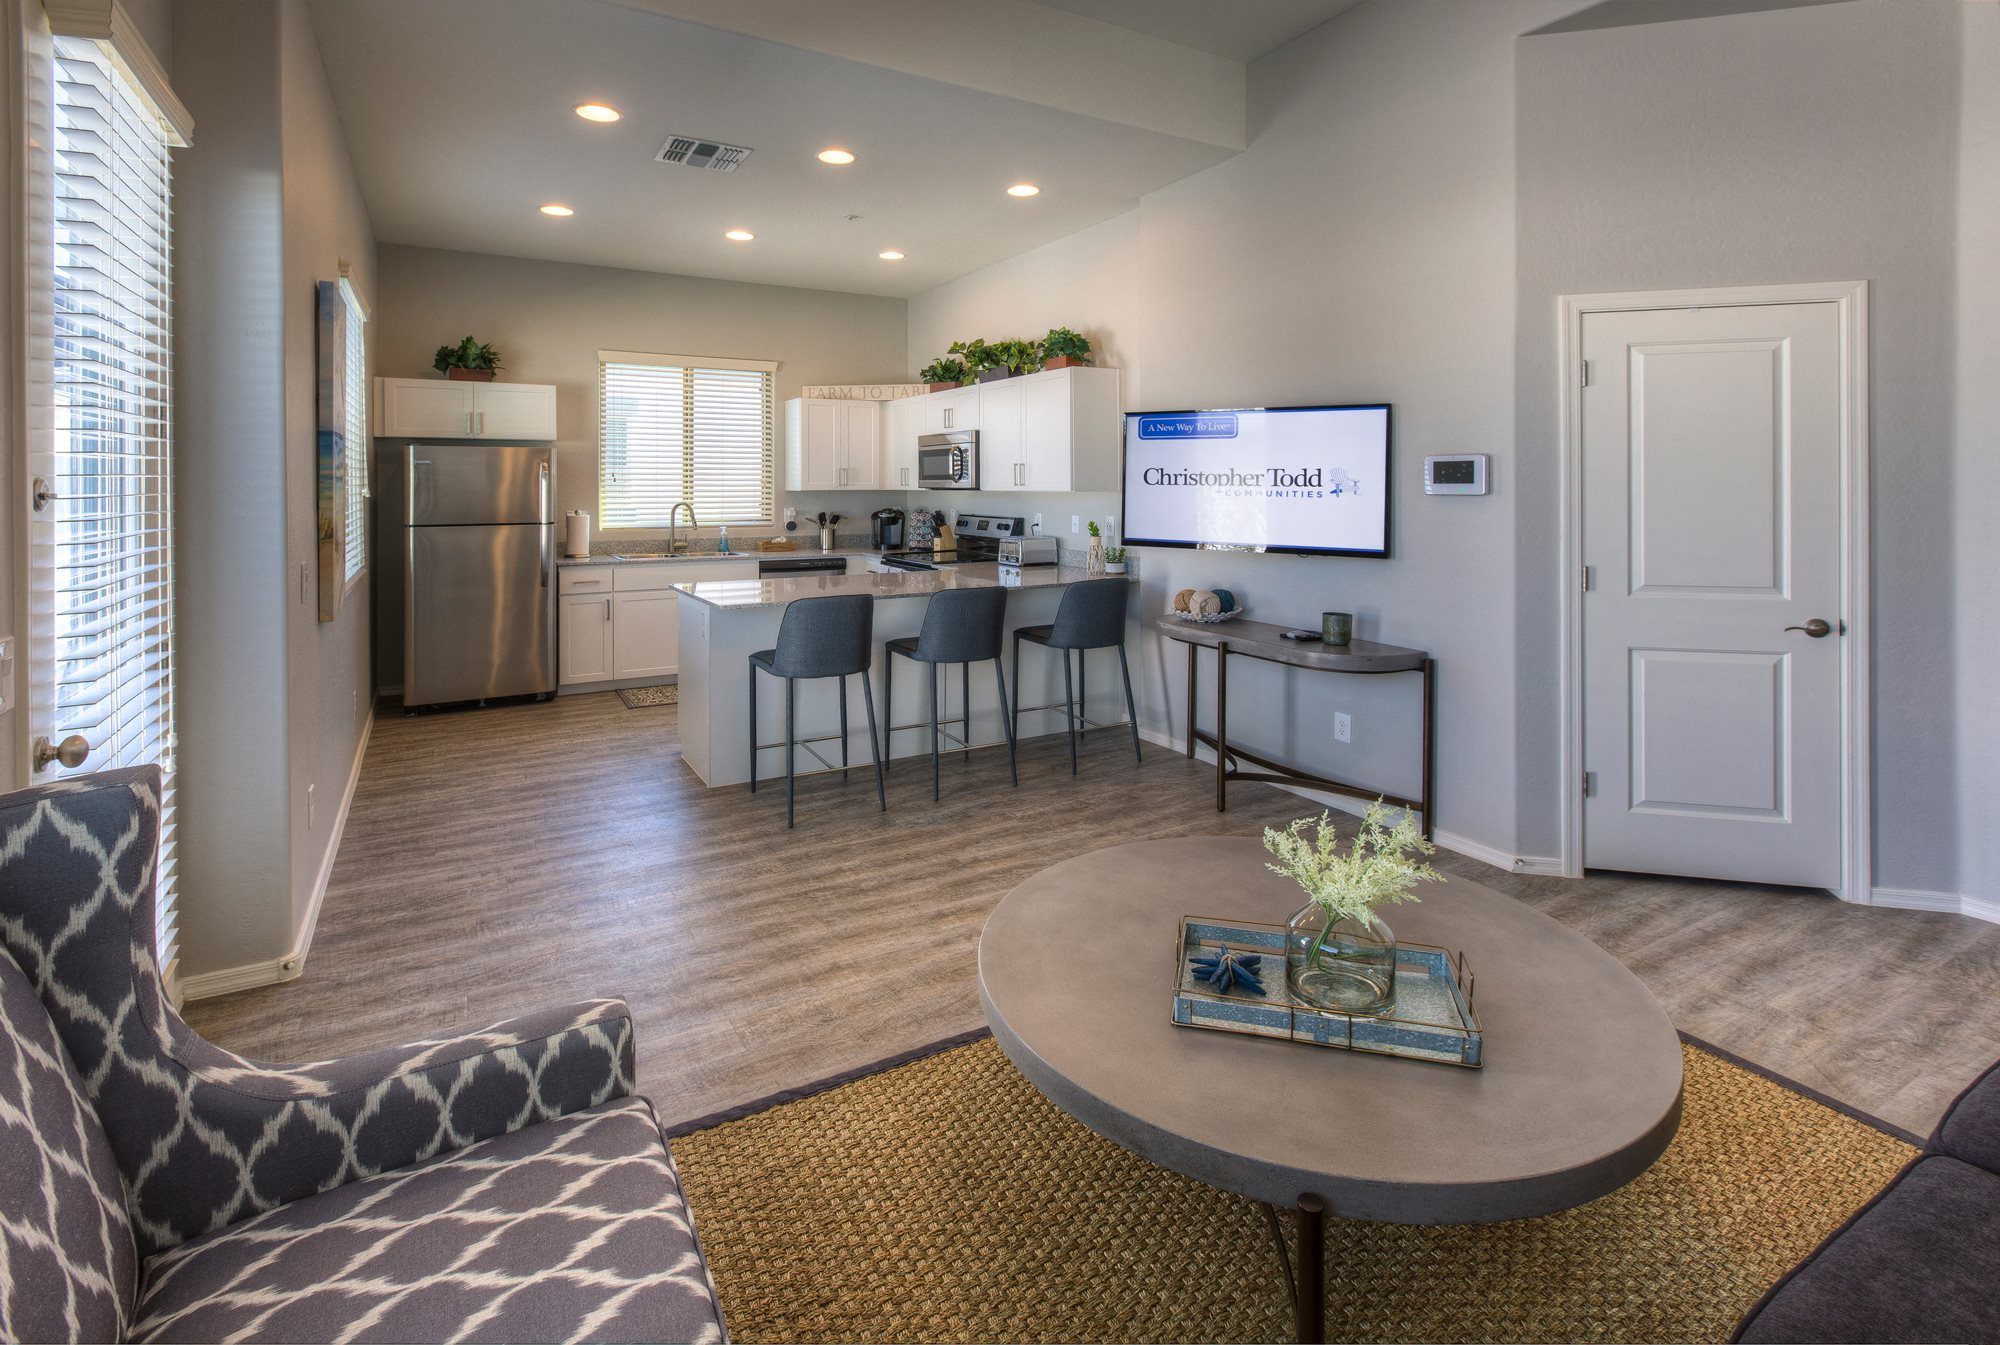 Spacious Homes at Christopher Todd Communities